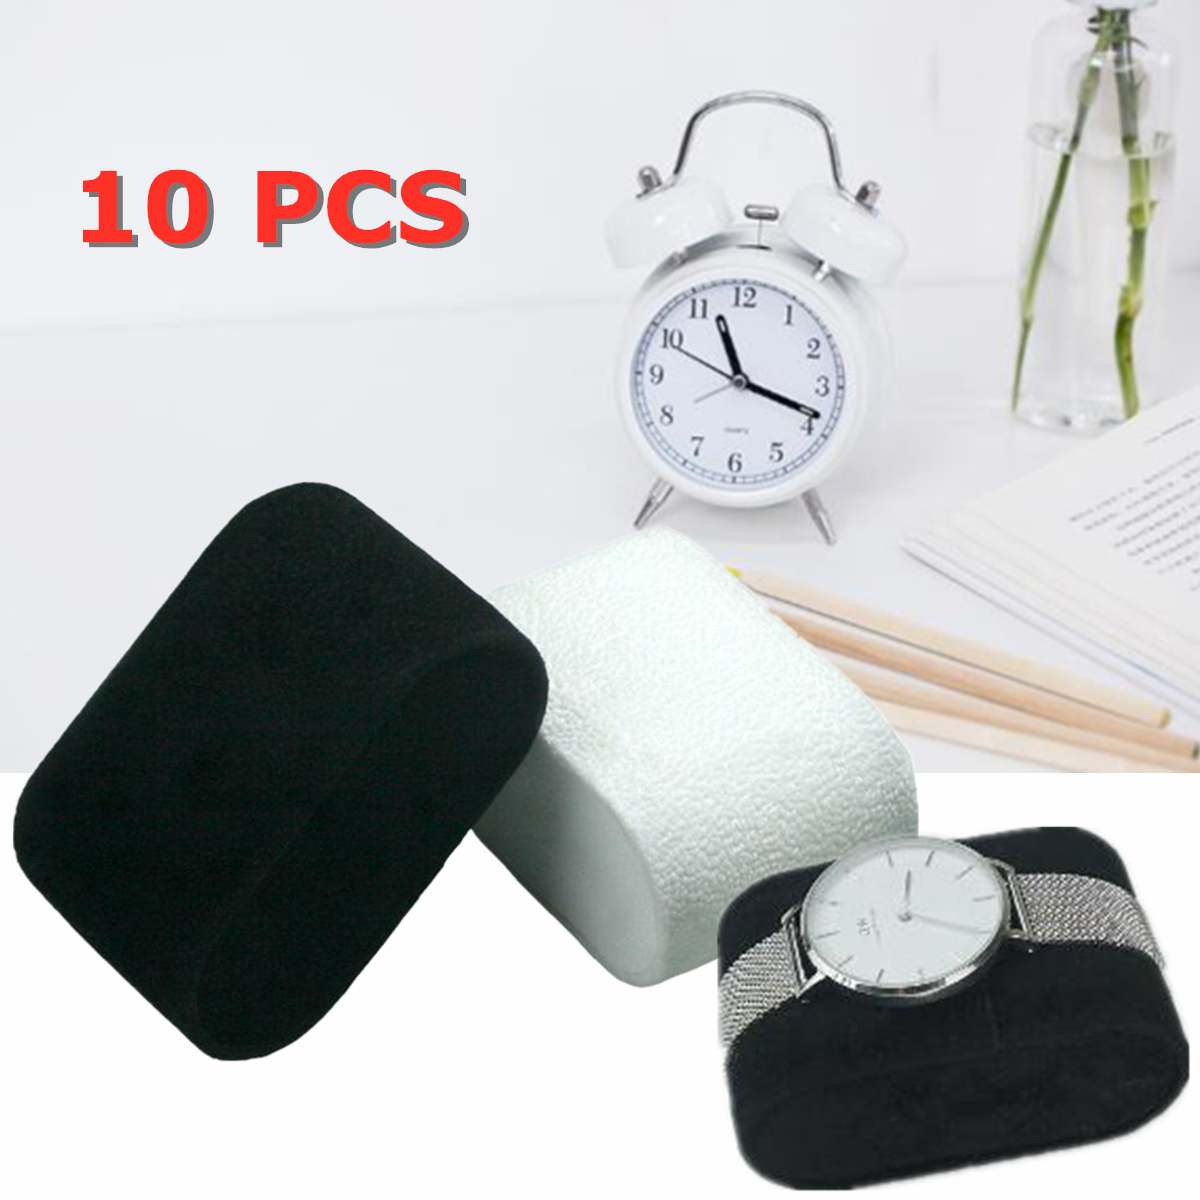 10pcs Velvet Bracelet Bangle Watch Pillow Holder For Jewelry Watches Case Box Jewelry Packaging & Display Watch Accessories10pcs Velvet Bracelet Bangle Watch Pillow Holder For Jewelry Watches Case Box Jewelry Packaging & Display Watch Accessories